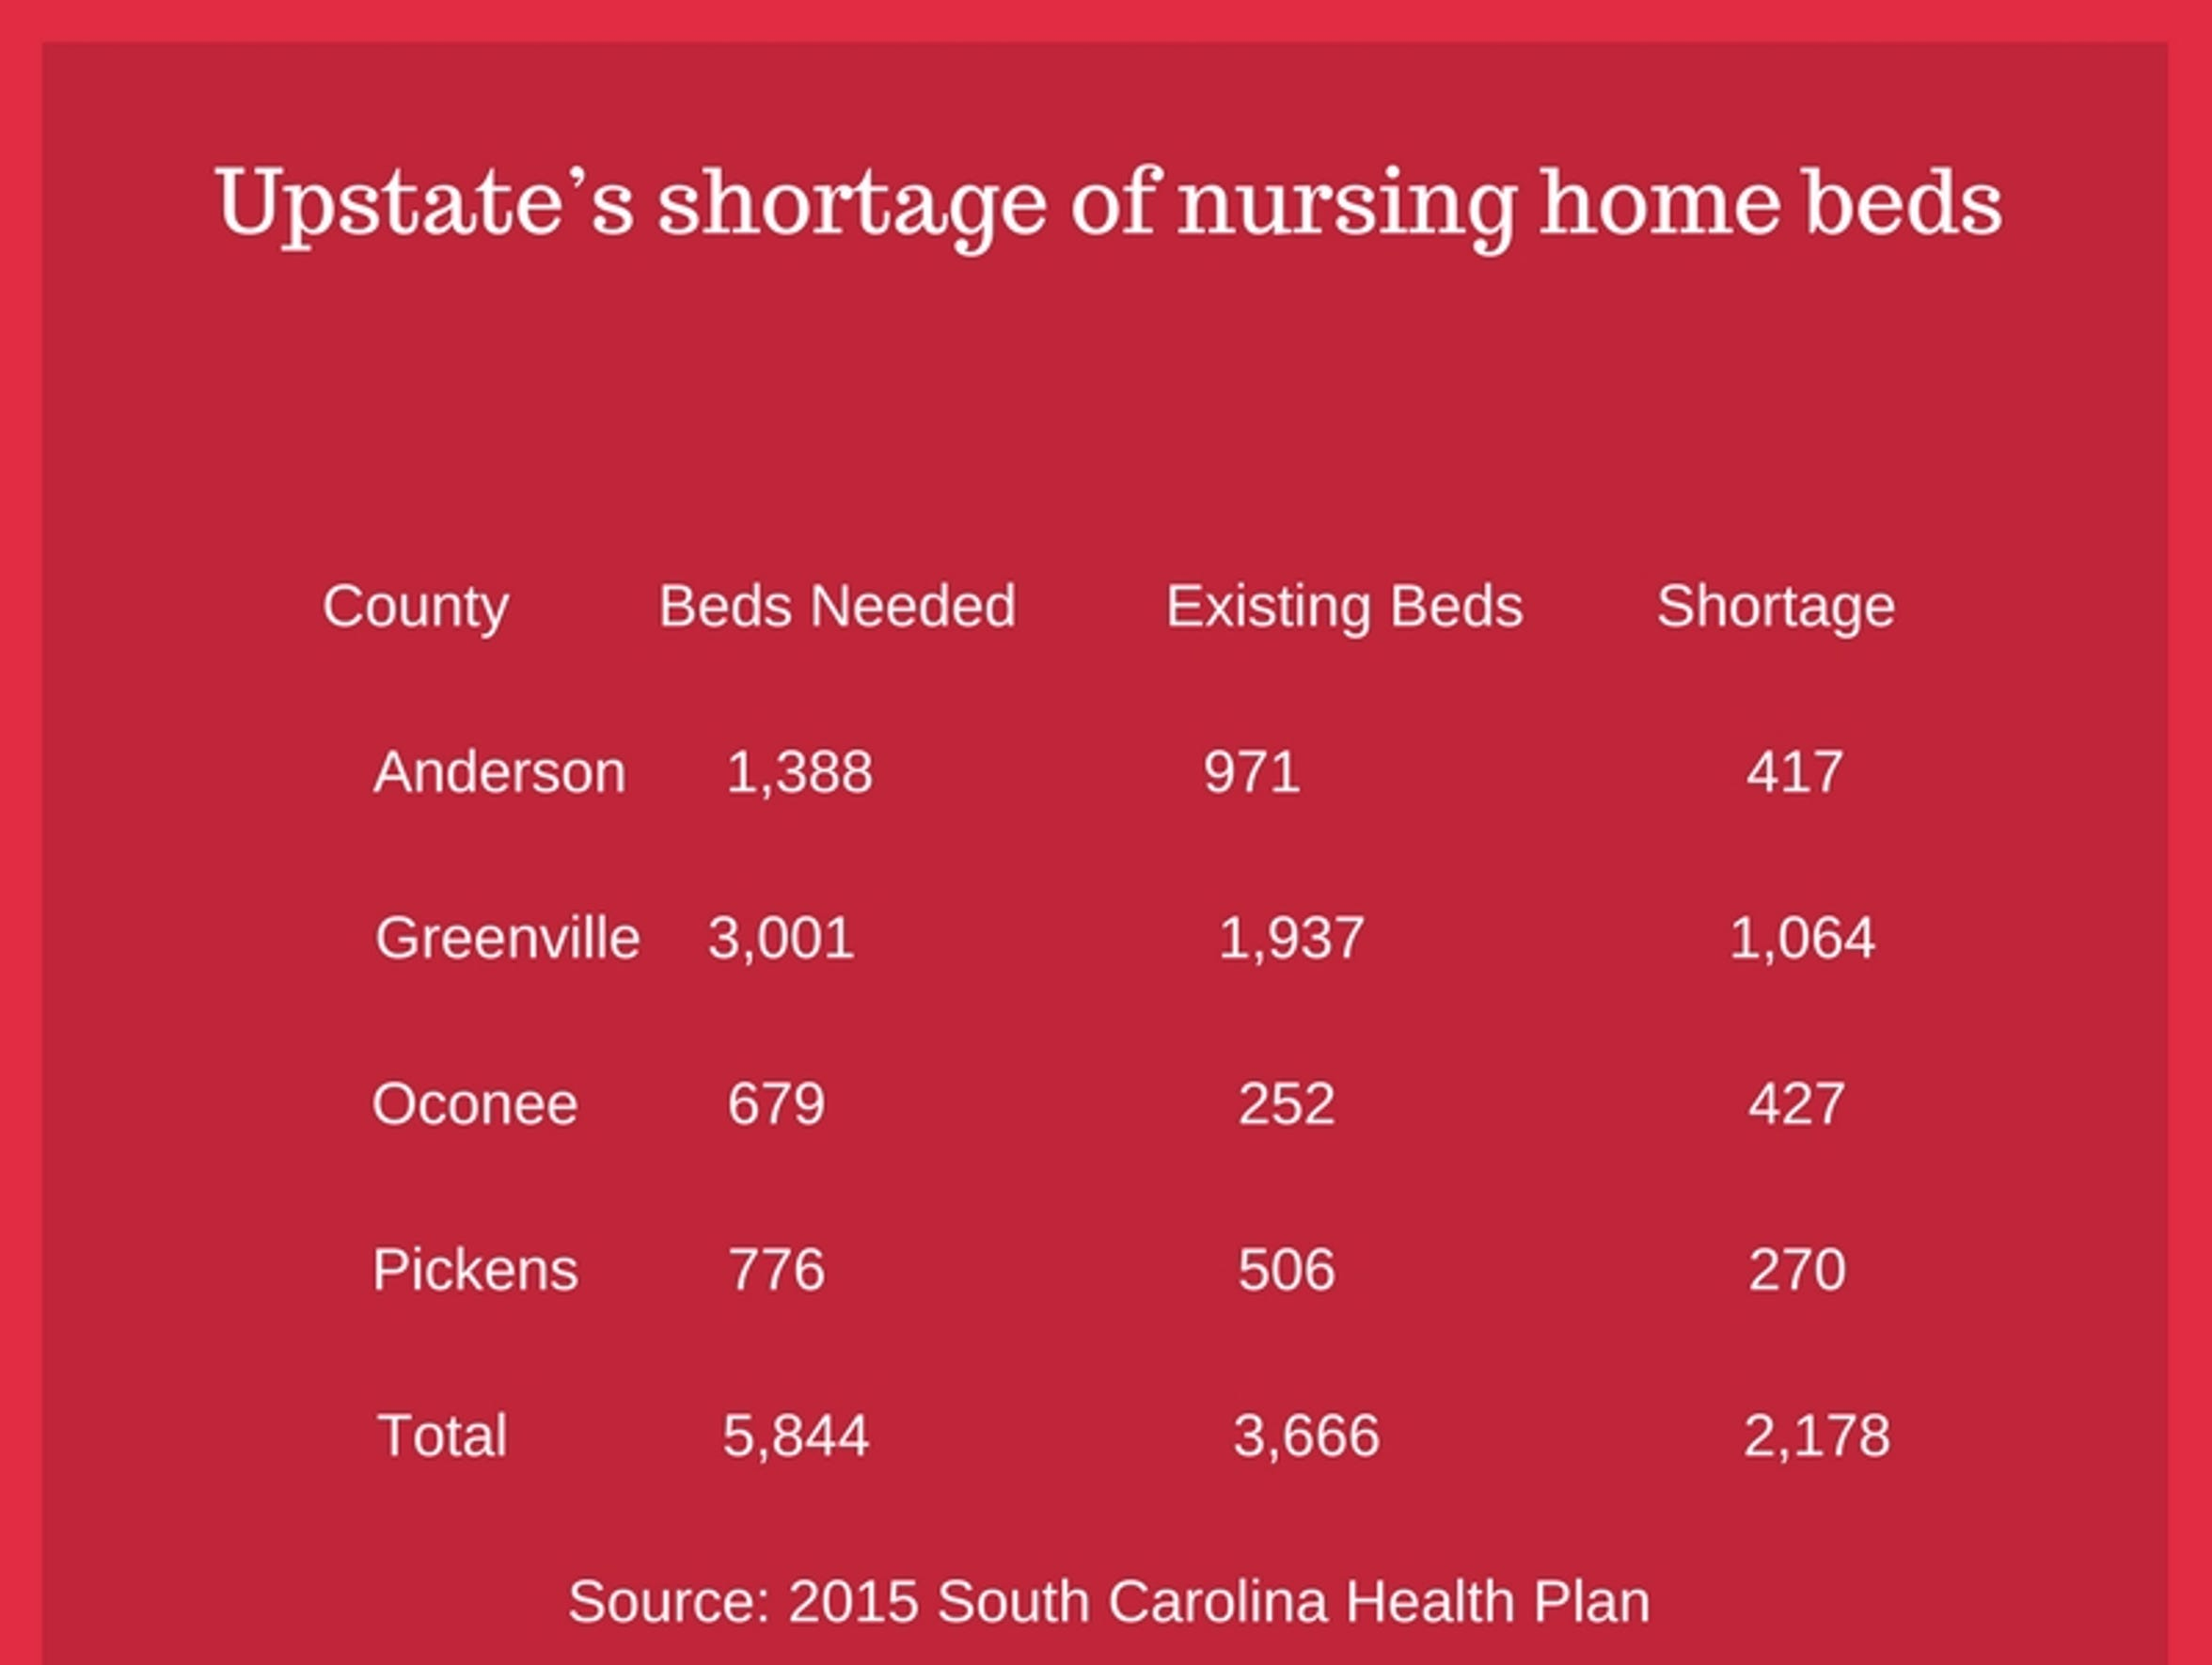 There is a need for almost 2,200 additional nursing